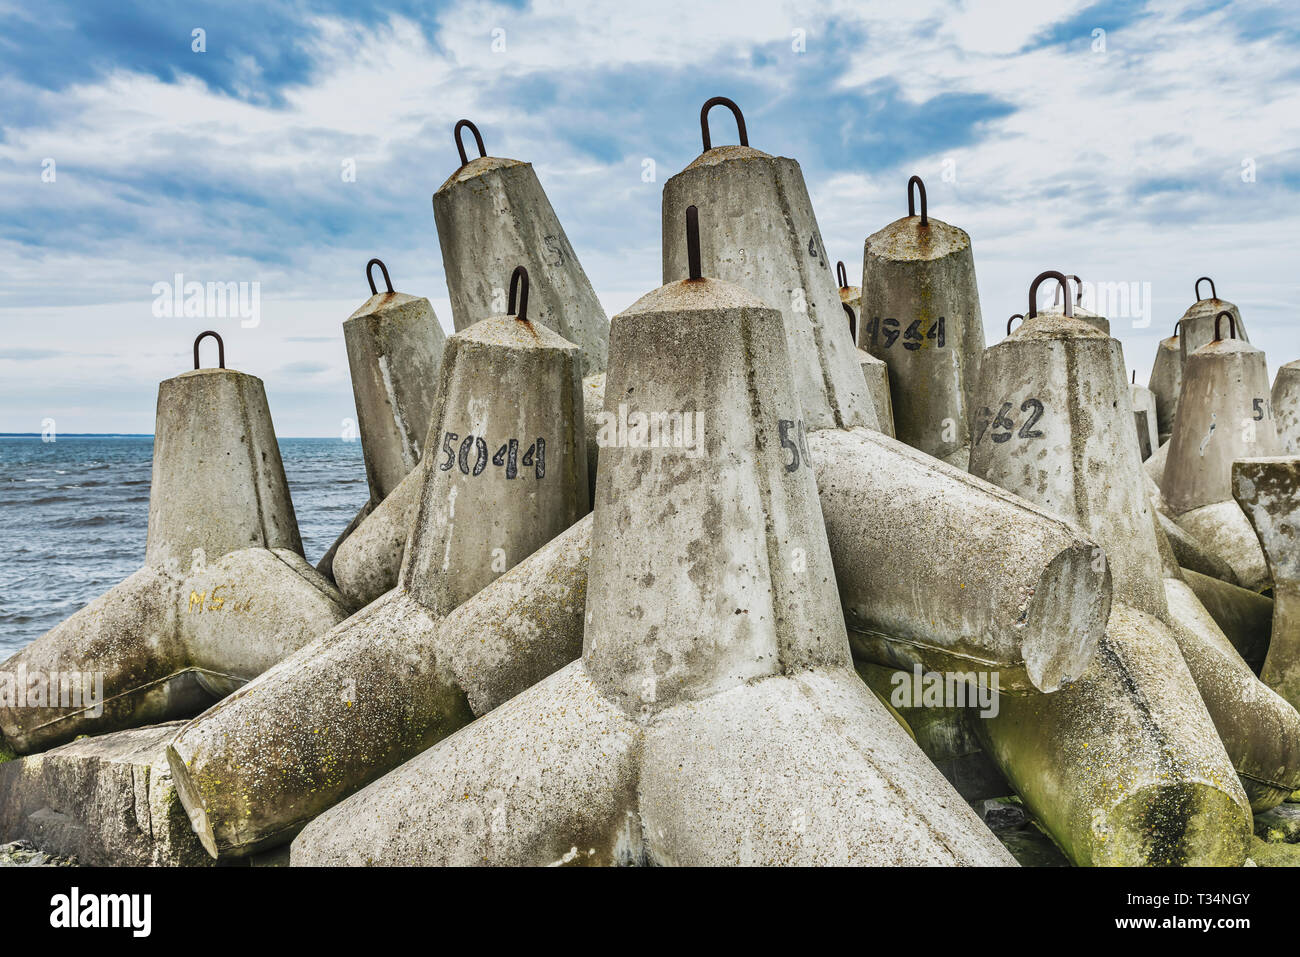 Tetrapods are concrete blocks used in coastal protection structures. - Stock Image